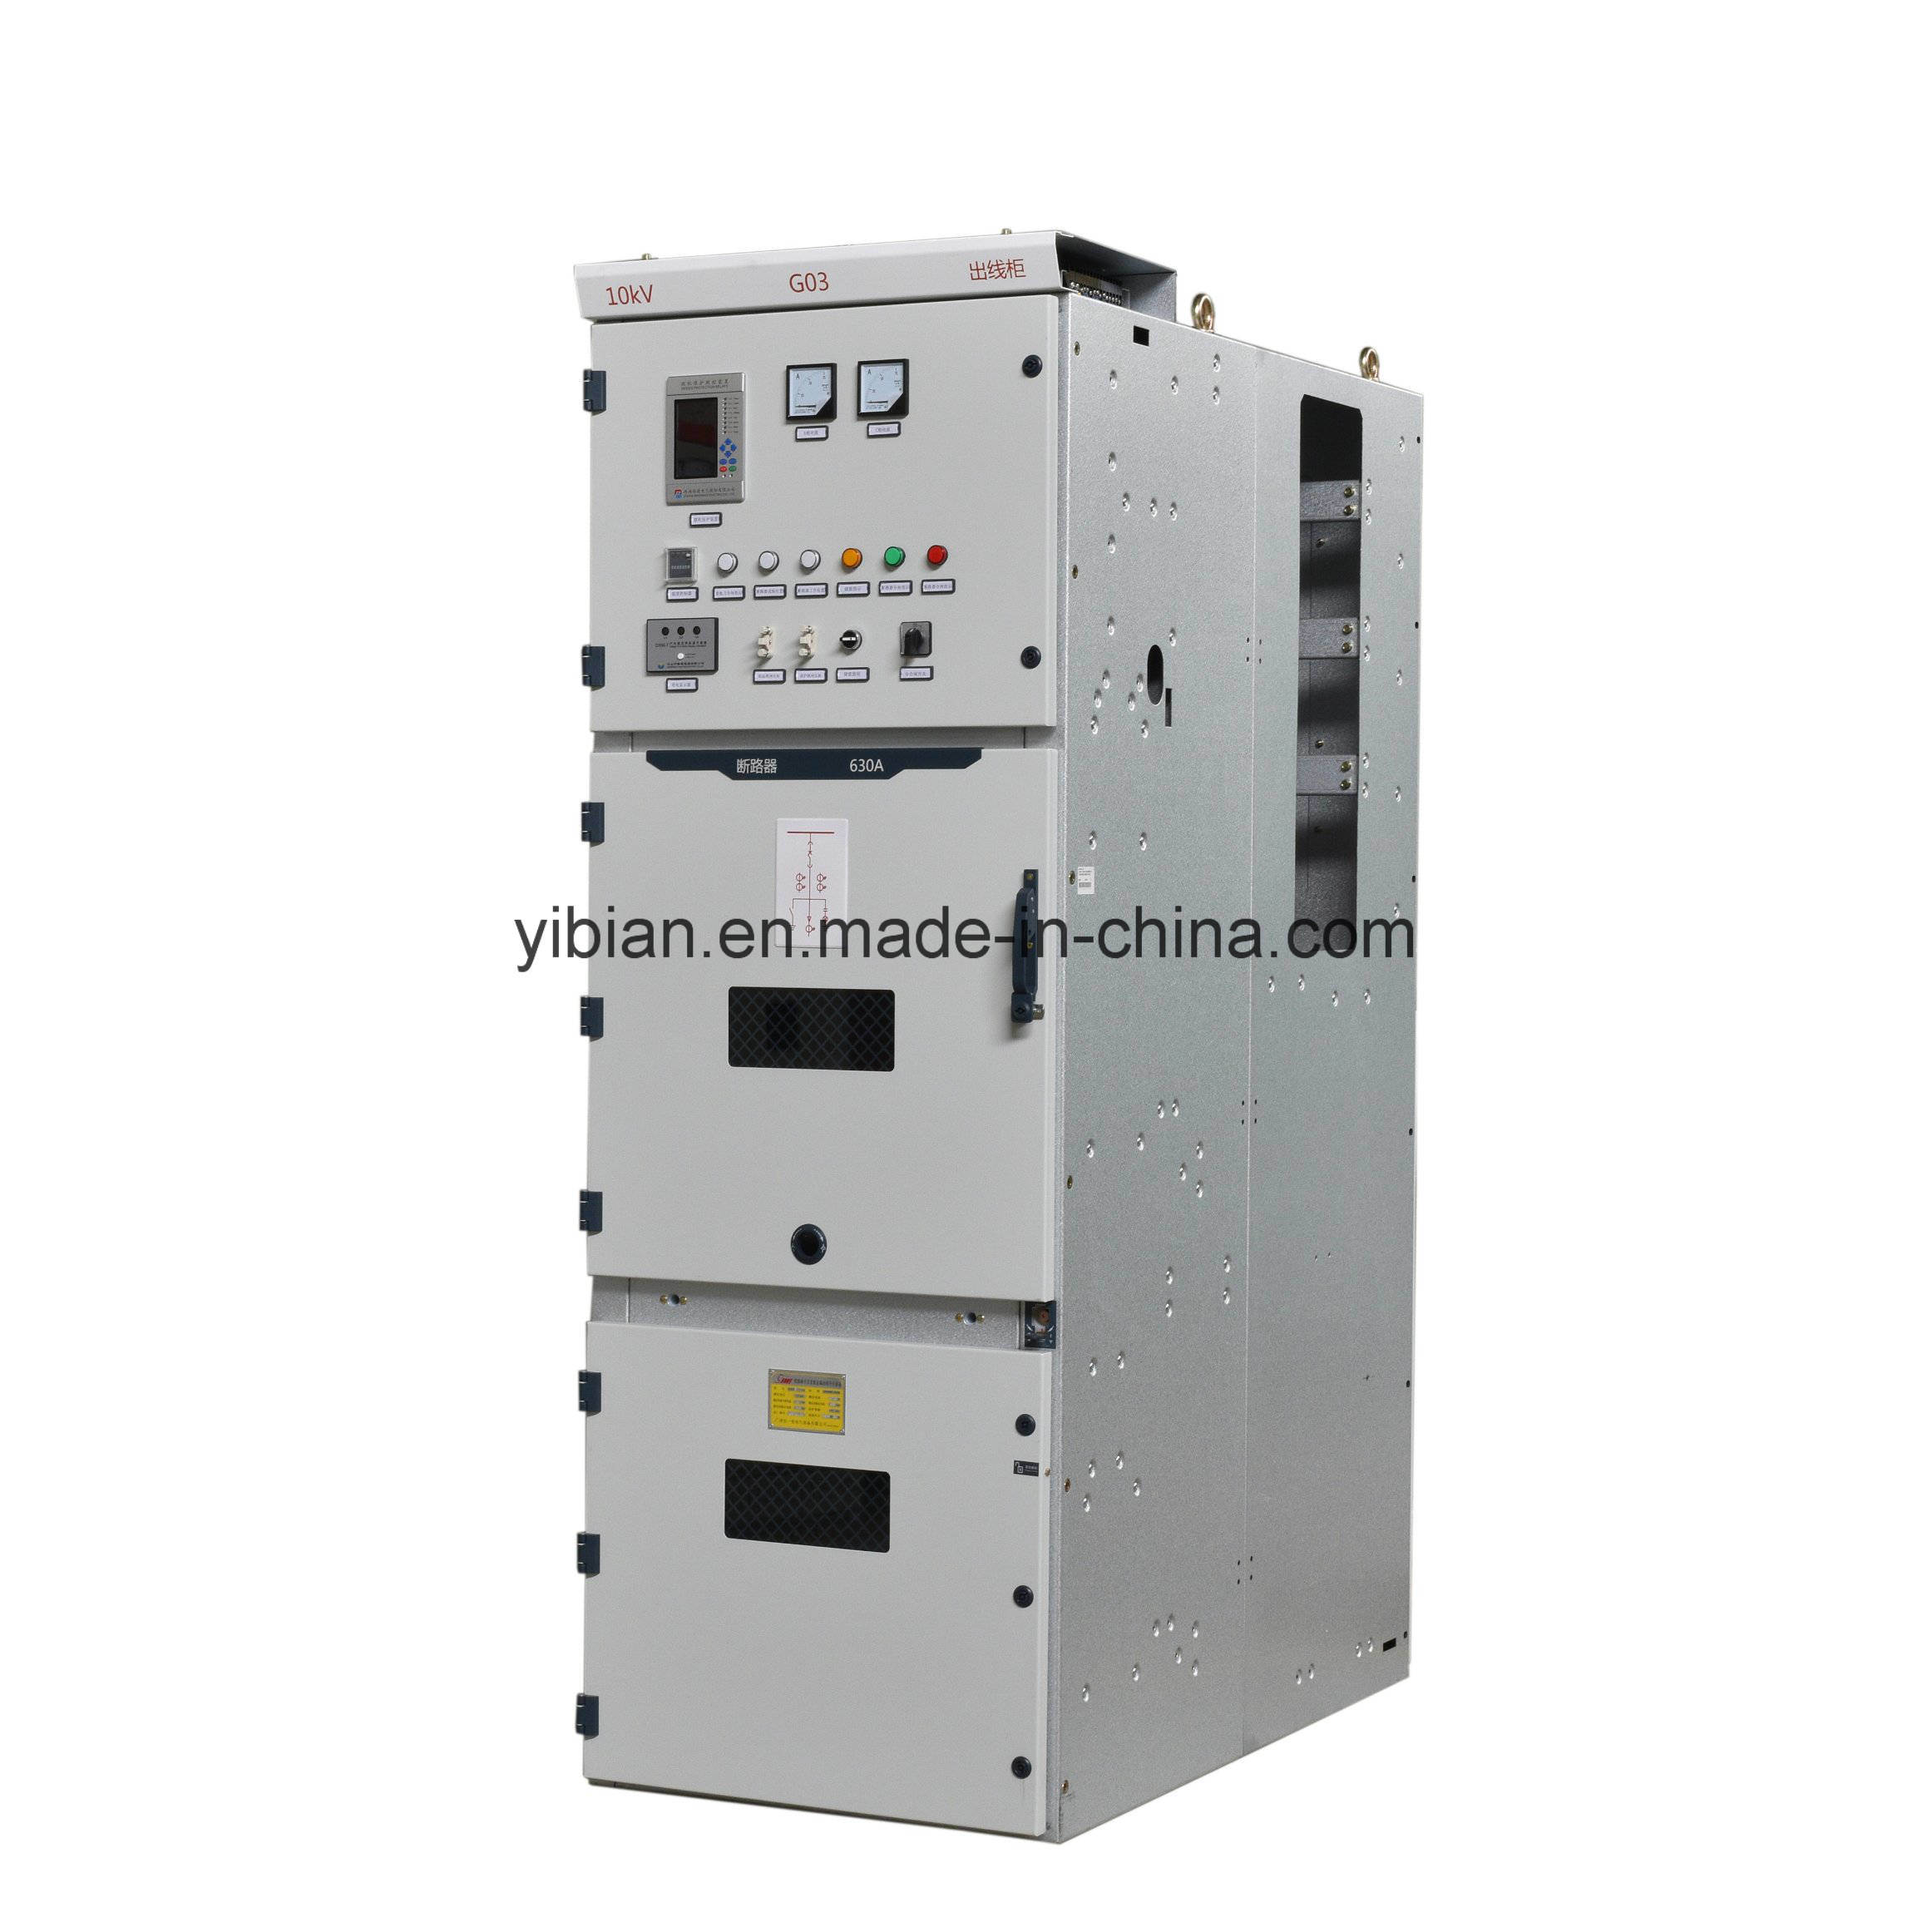 China Alternating Current Metal Enclosed Switchgear And Controlgear Circuit Breaker Enclosure